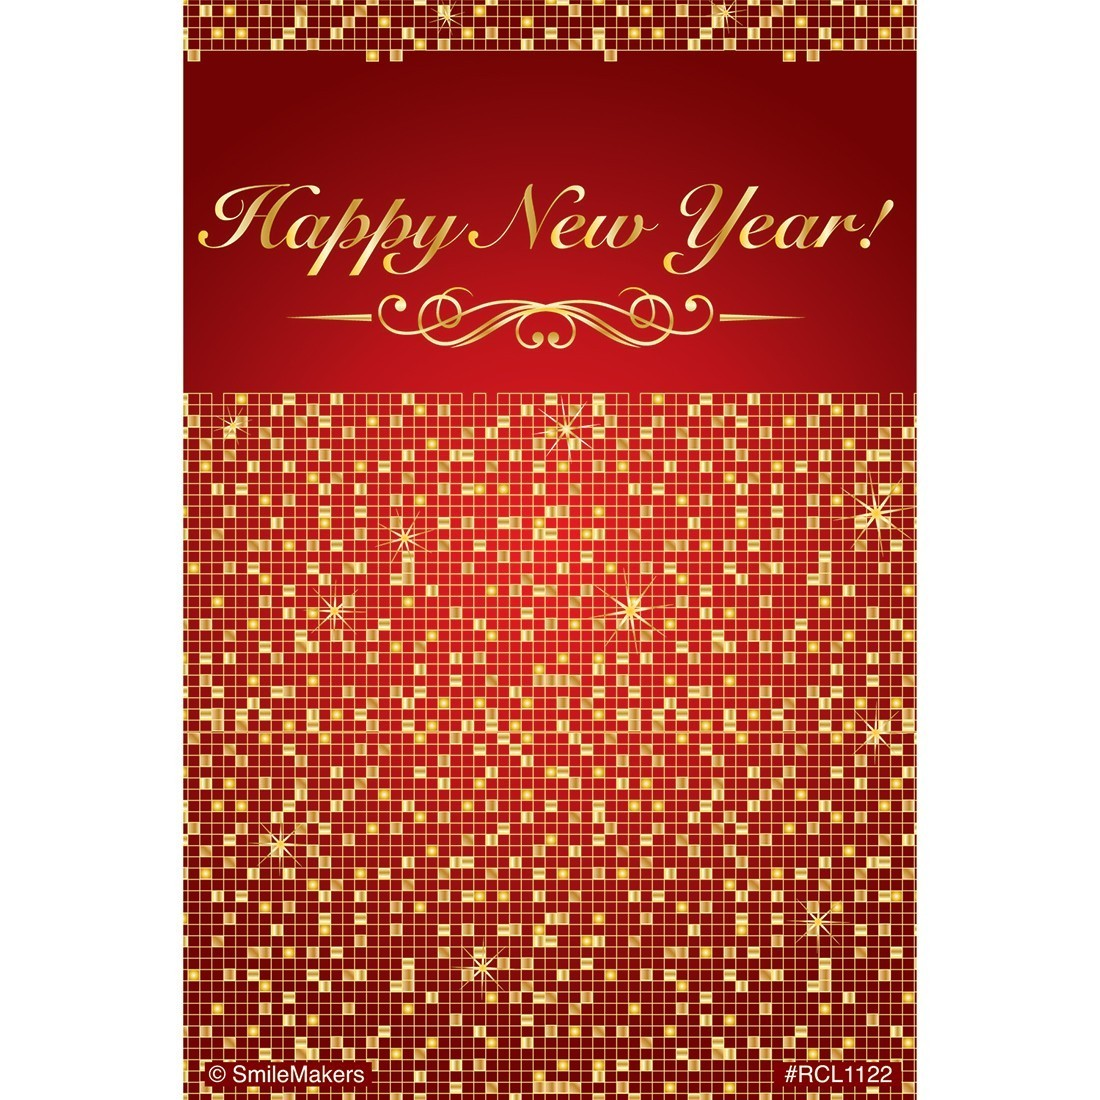 Happy New Year Sparkles Recall Cards [image]